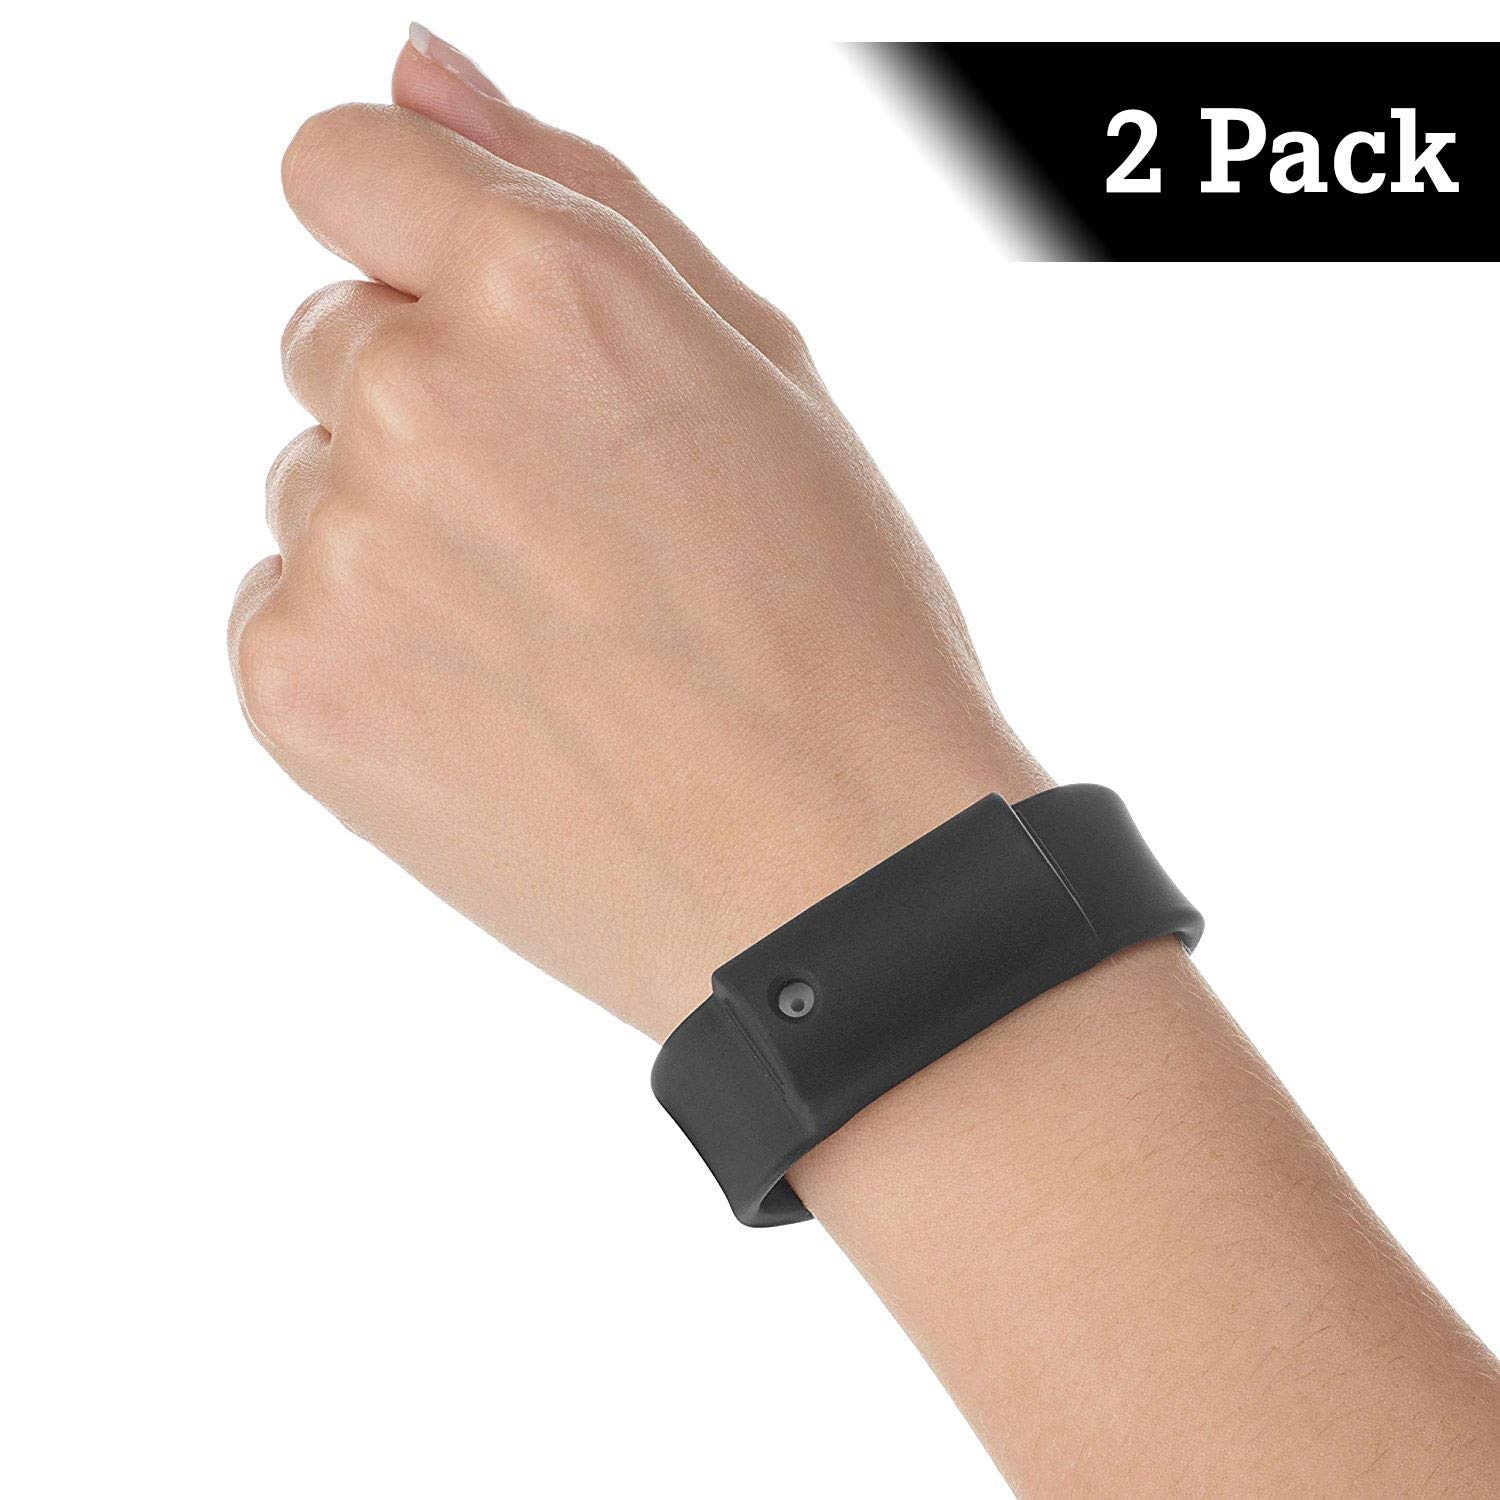 Little Viper Pepper Spray Bracelet – Maximum Strength, 3-6 Bursts & up to 3-Foot Range (1 oz.), Not for Purchase in MA or NY (2 Pack, Black)